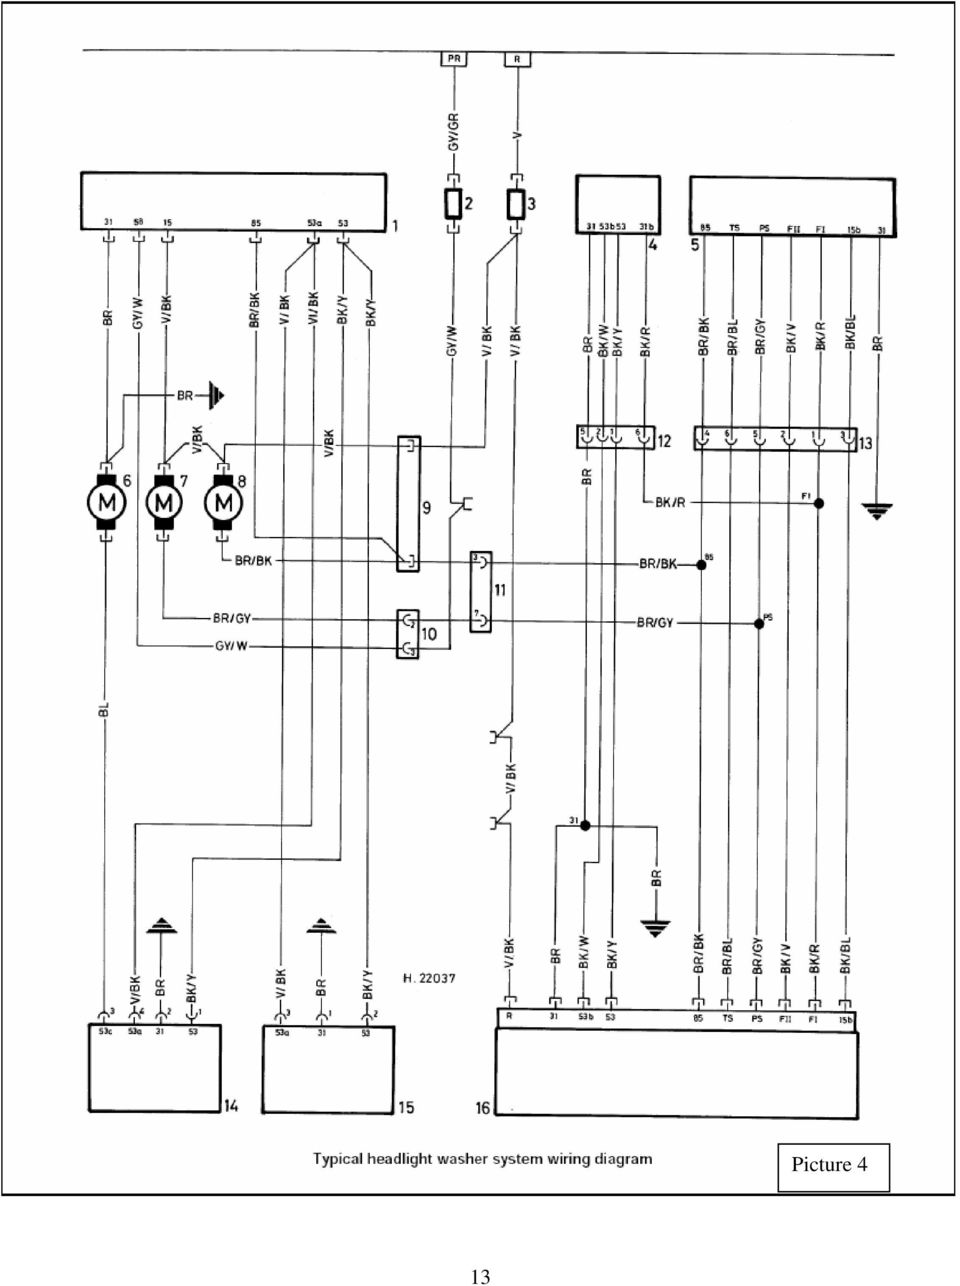 hight resolution of 14 key to headlighl washer syslem wiring diagram picture 4 1 control unit for headlight cleaners on fluid reservoir 2 fuse overnight tail and